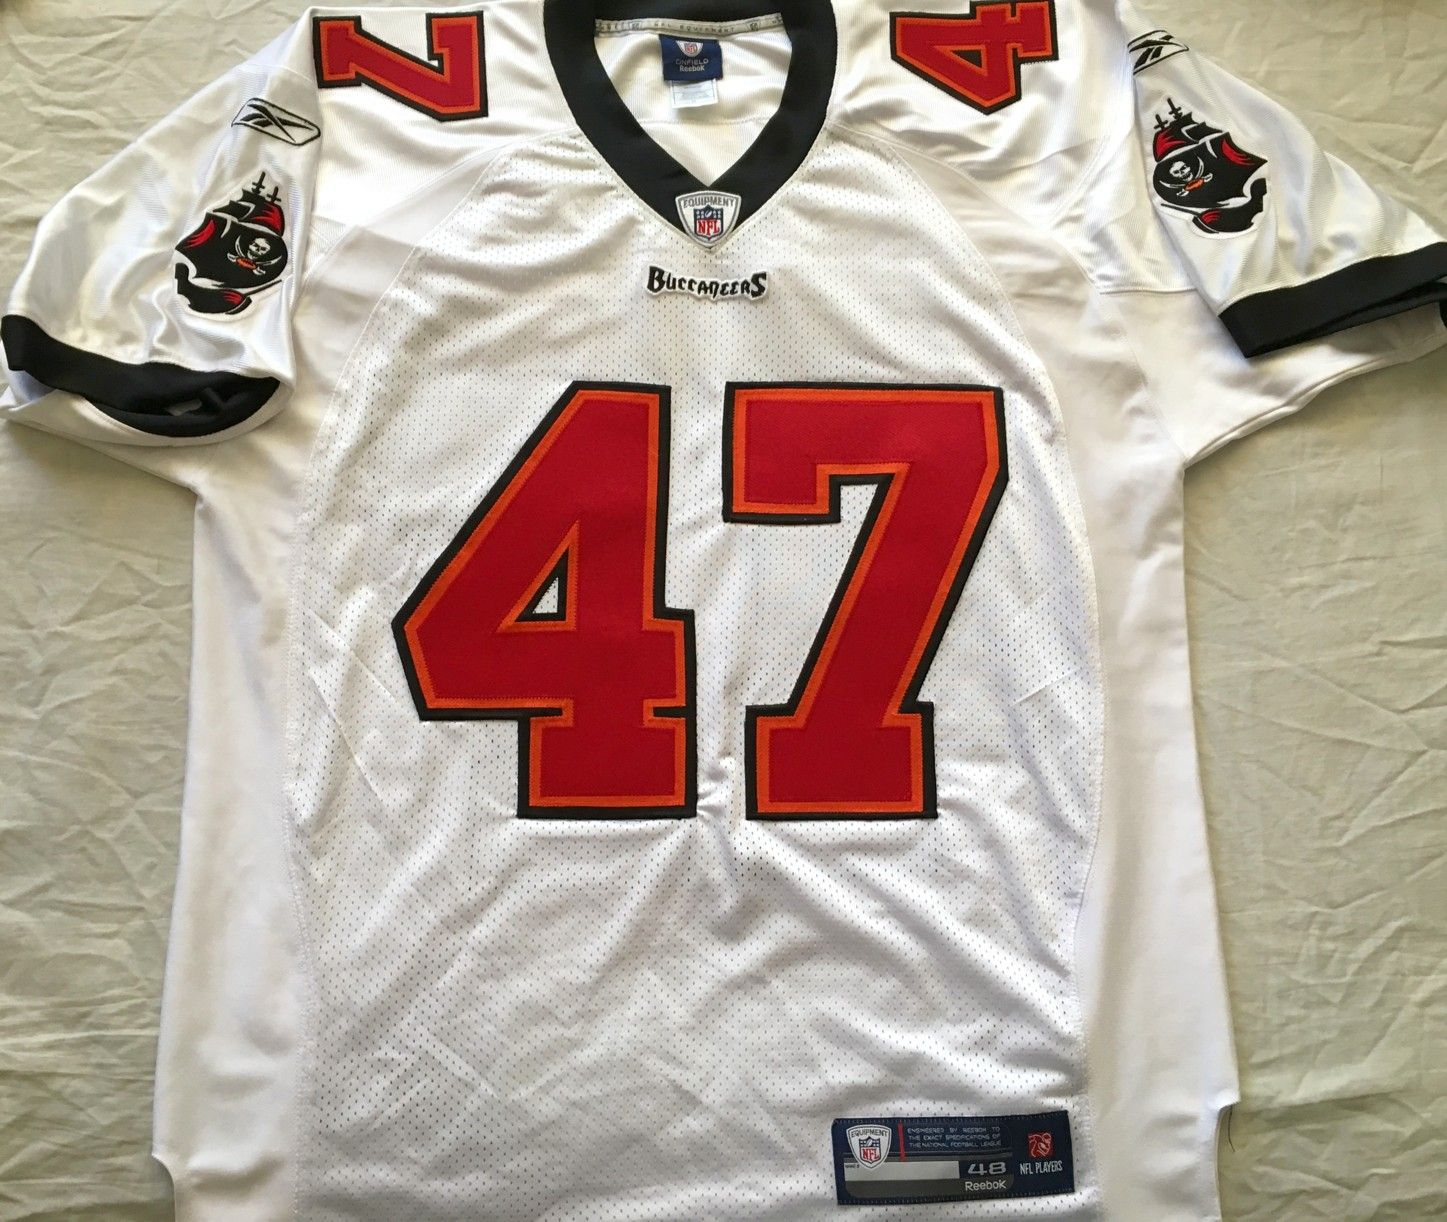 0cc2c9f4d0eac3 ... sweden john lynch tampa bay buccaneers authentic reebok game model  white stitched jersey new b3e08 99709